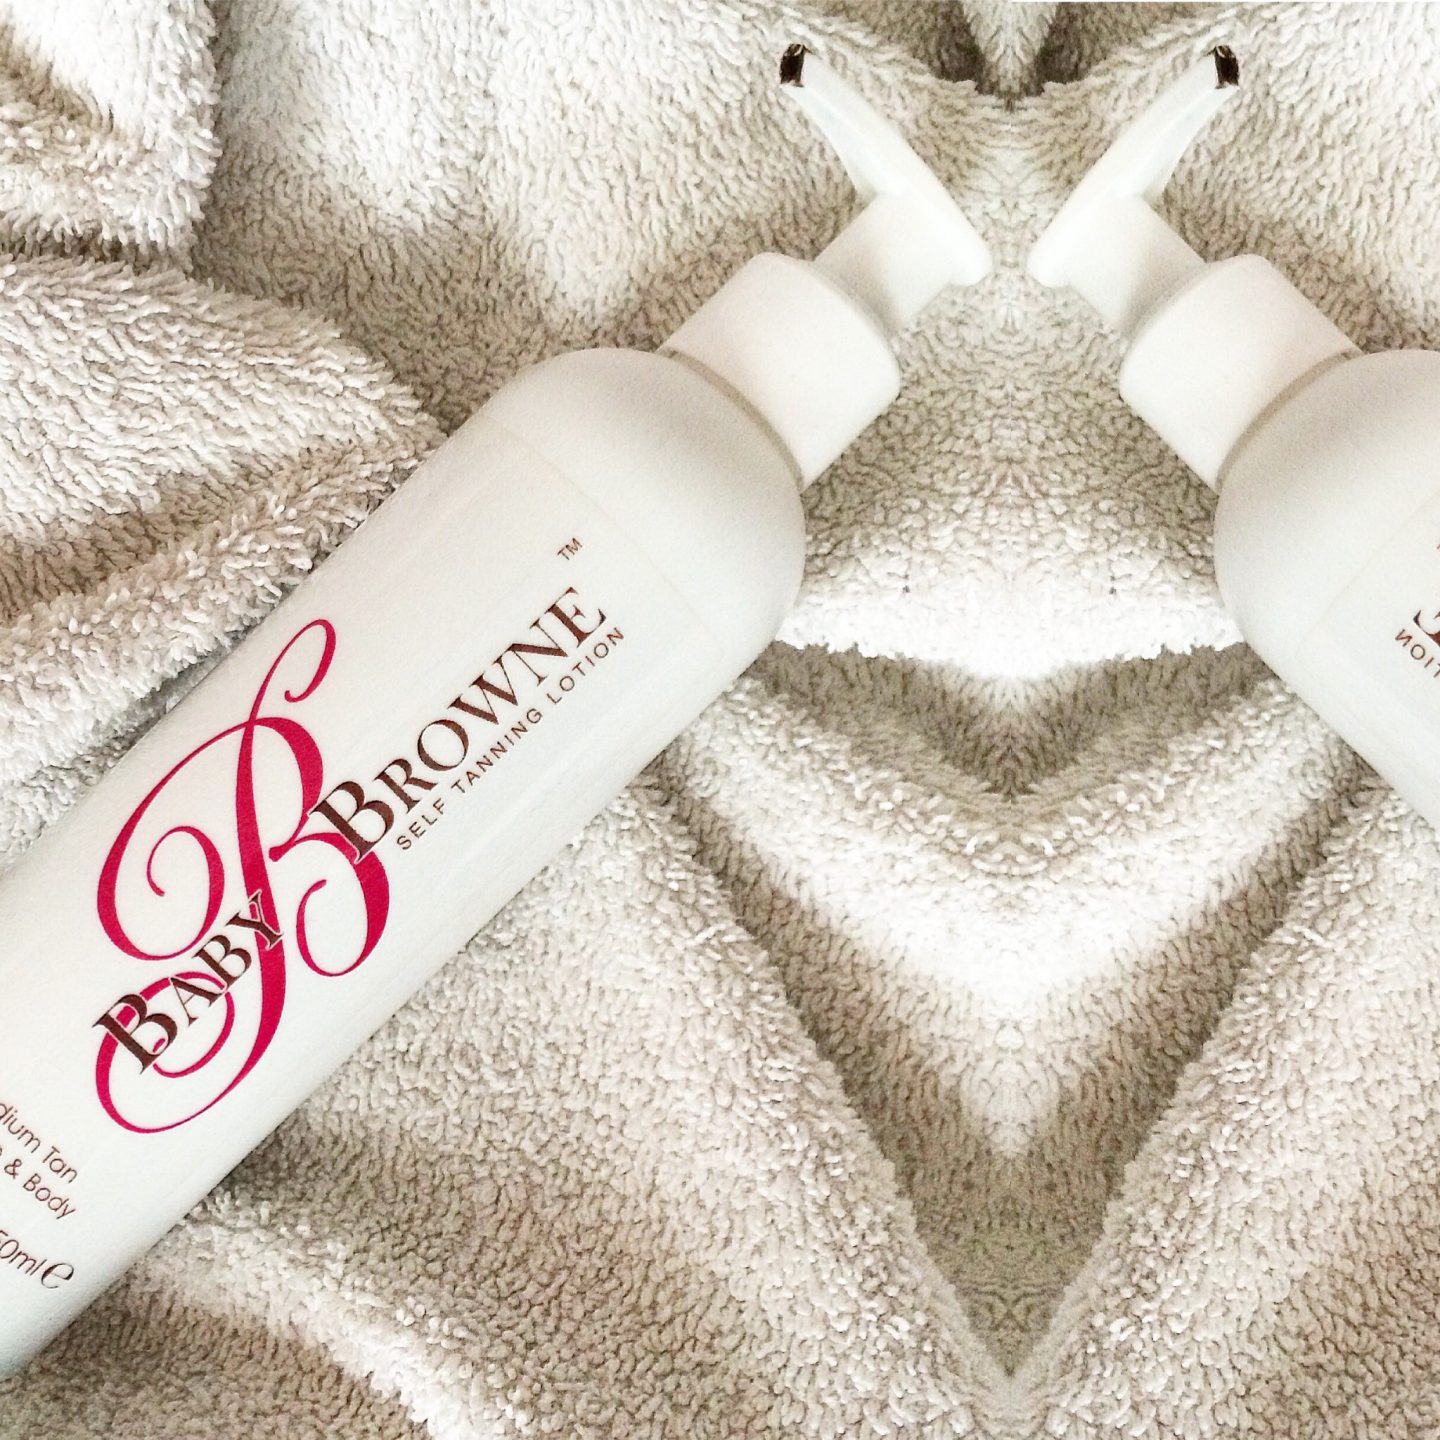 Beauty | Baby B. Browne Self-Tanning Lotion